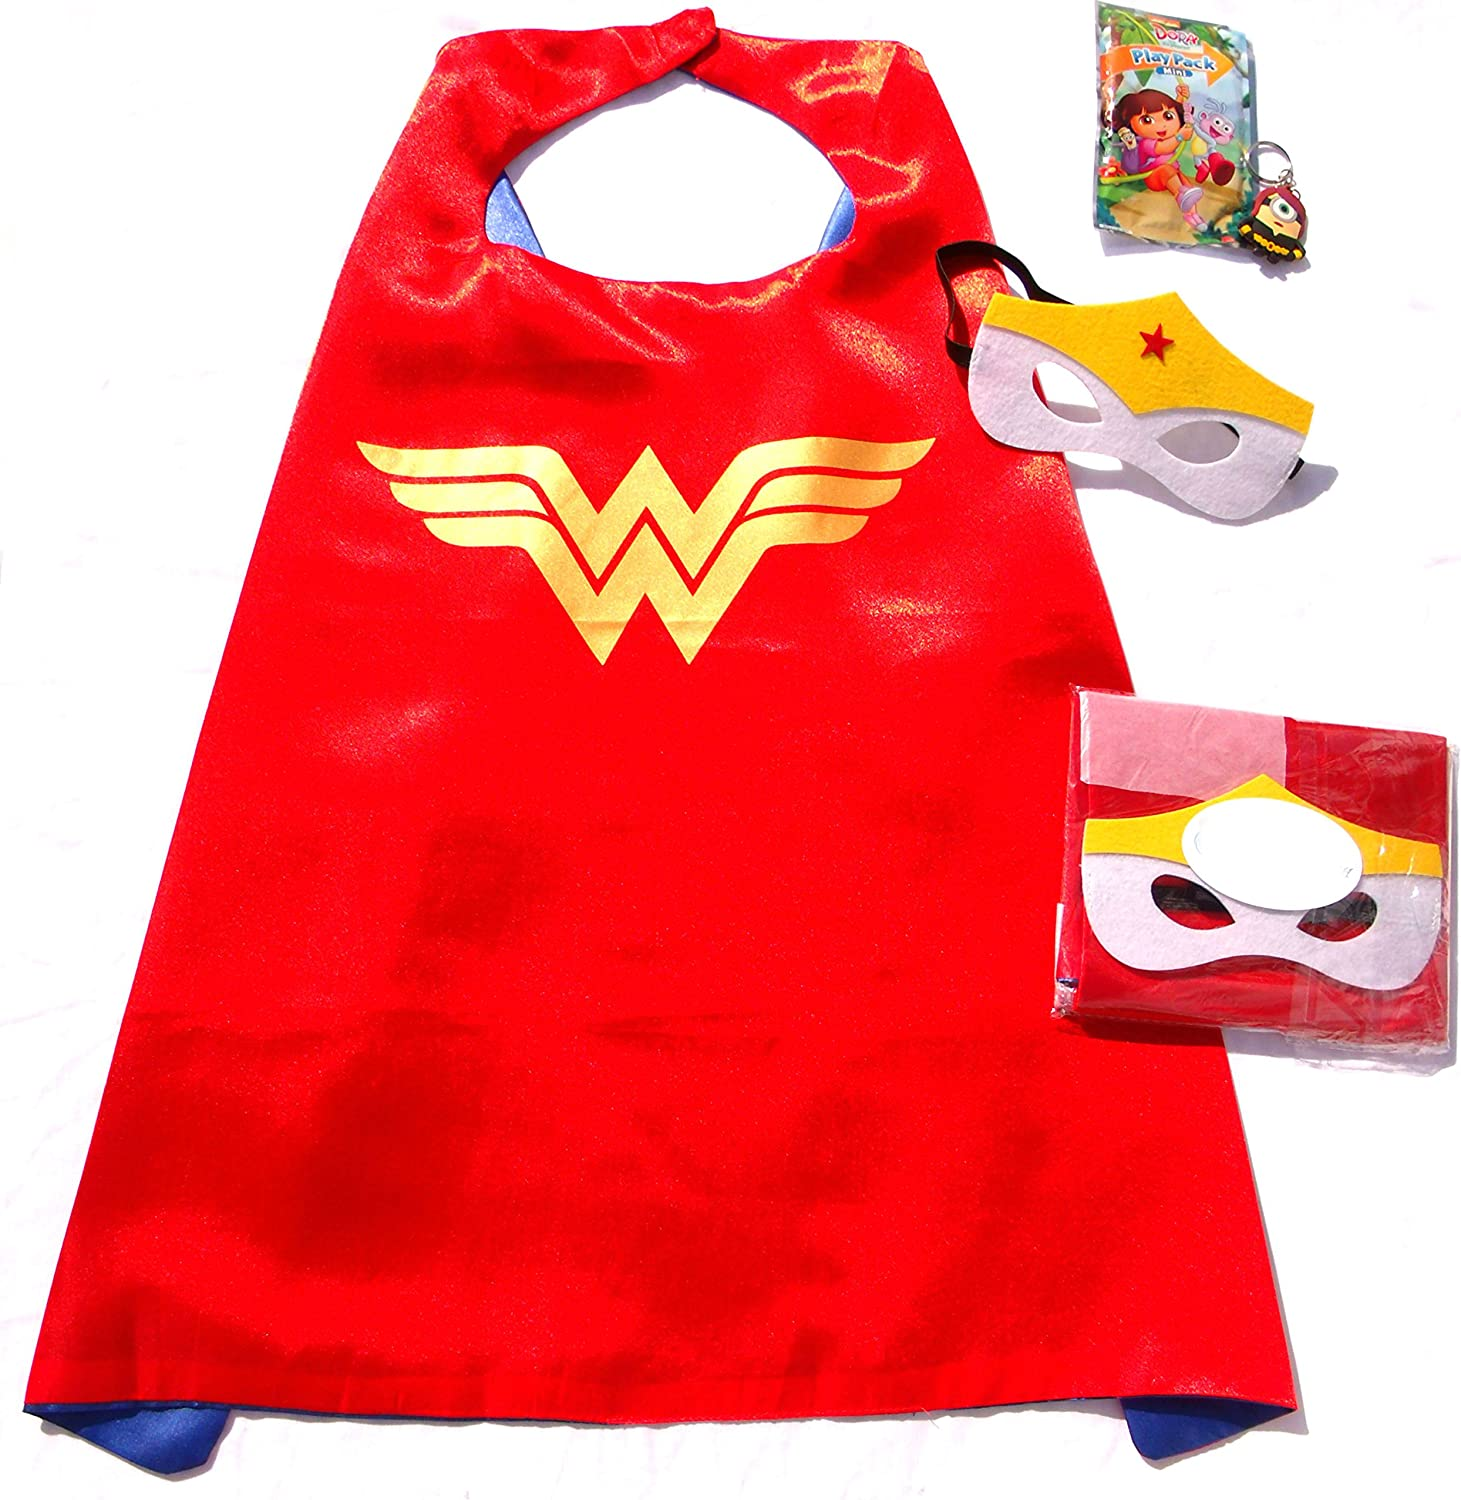 Tuojin Wonder Woman Dress up Color-N-Splash Three Piece Superhero Cape /& Mask Sets for Pretend Play Parties by Parties by